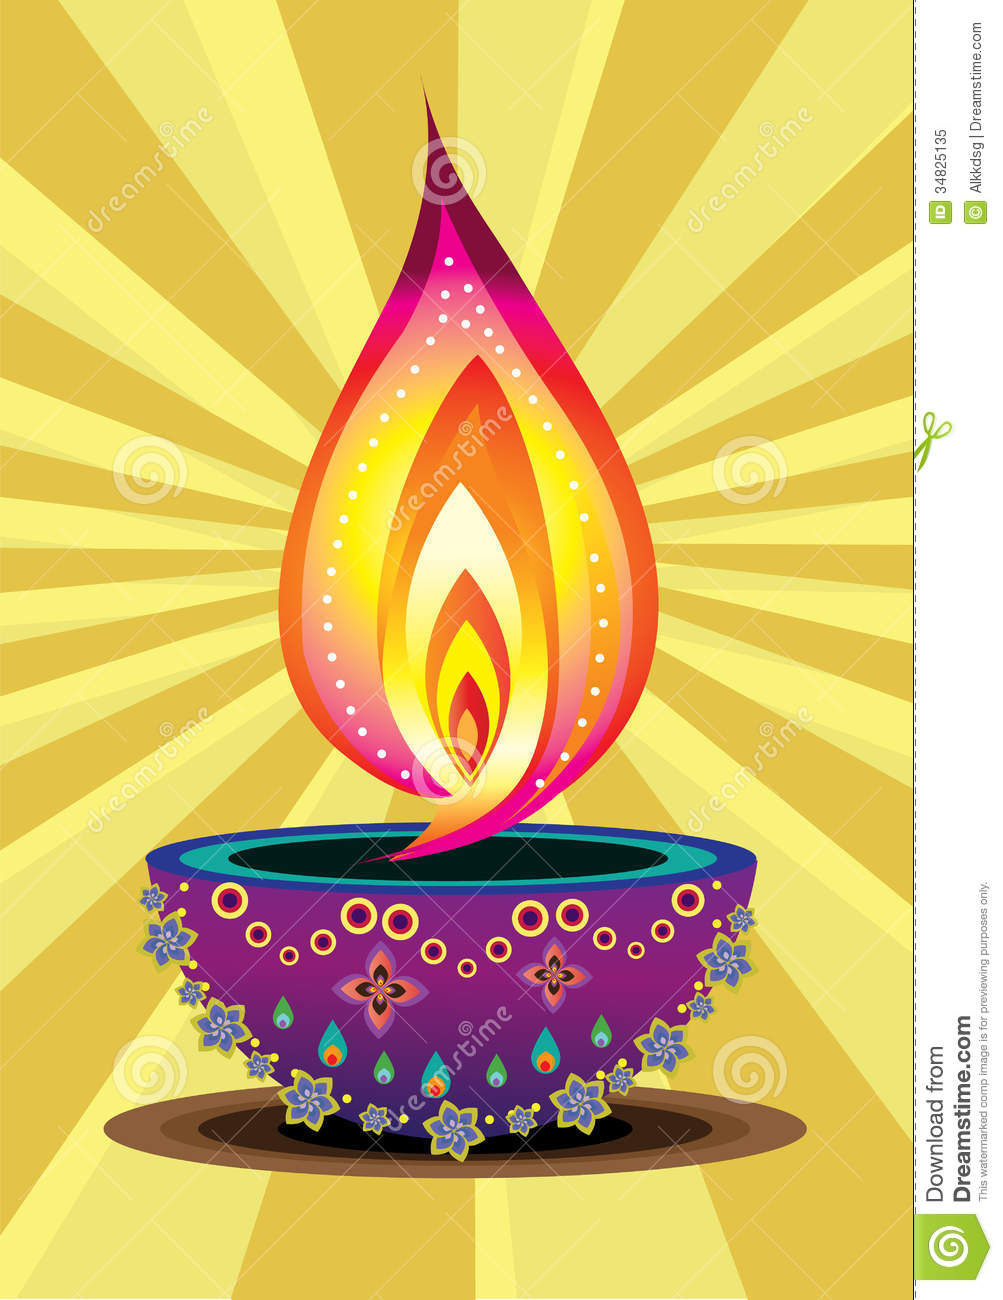 Diwali Candle Light stock vector. Illustration of festival - 34825135 for Diwali Lamp Designs  539wja